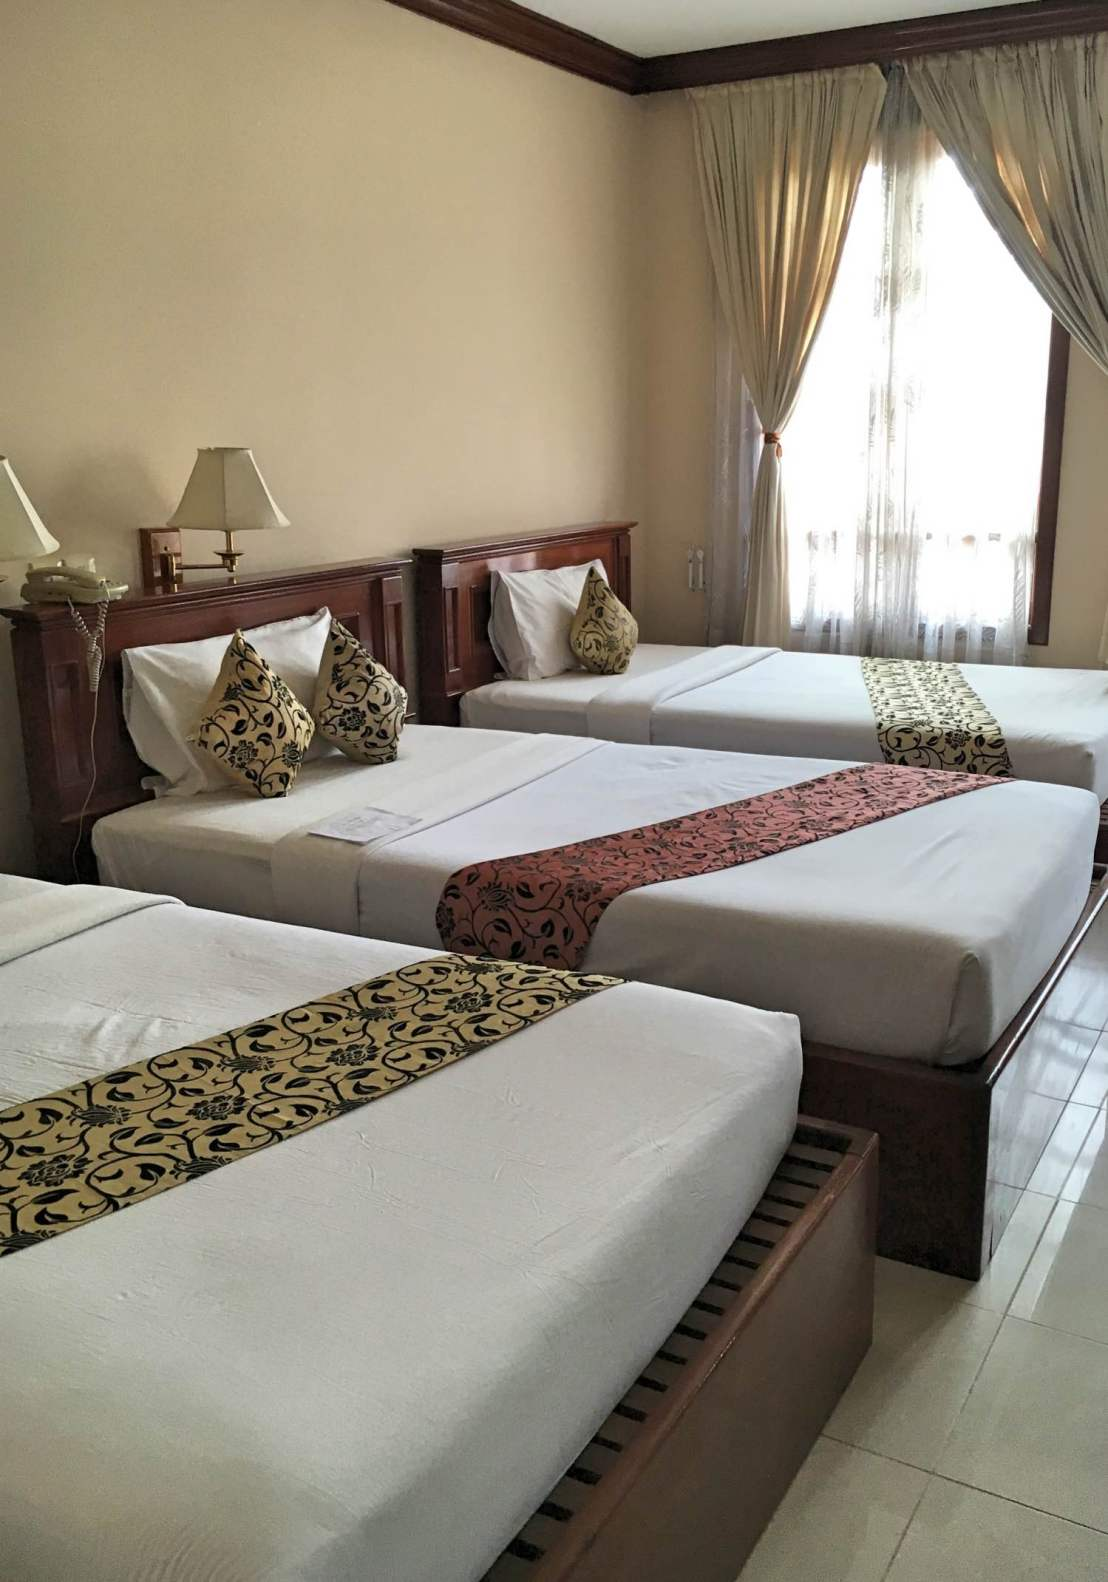 Triple room at the Soria Moira hotel in Siem Reap